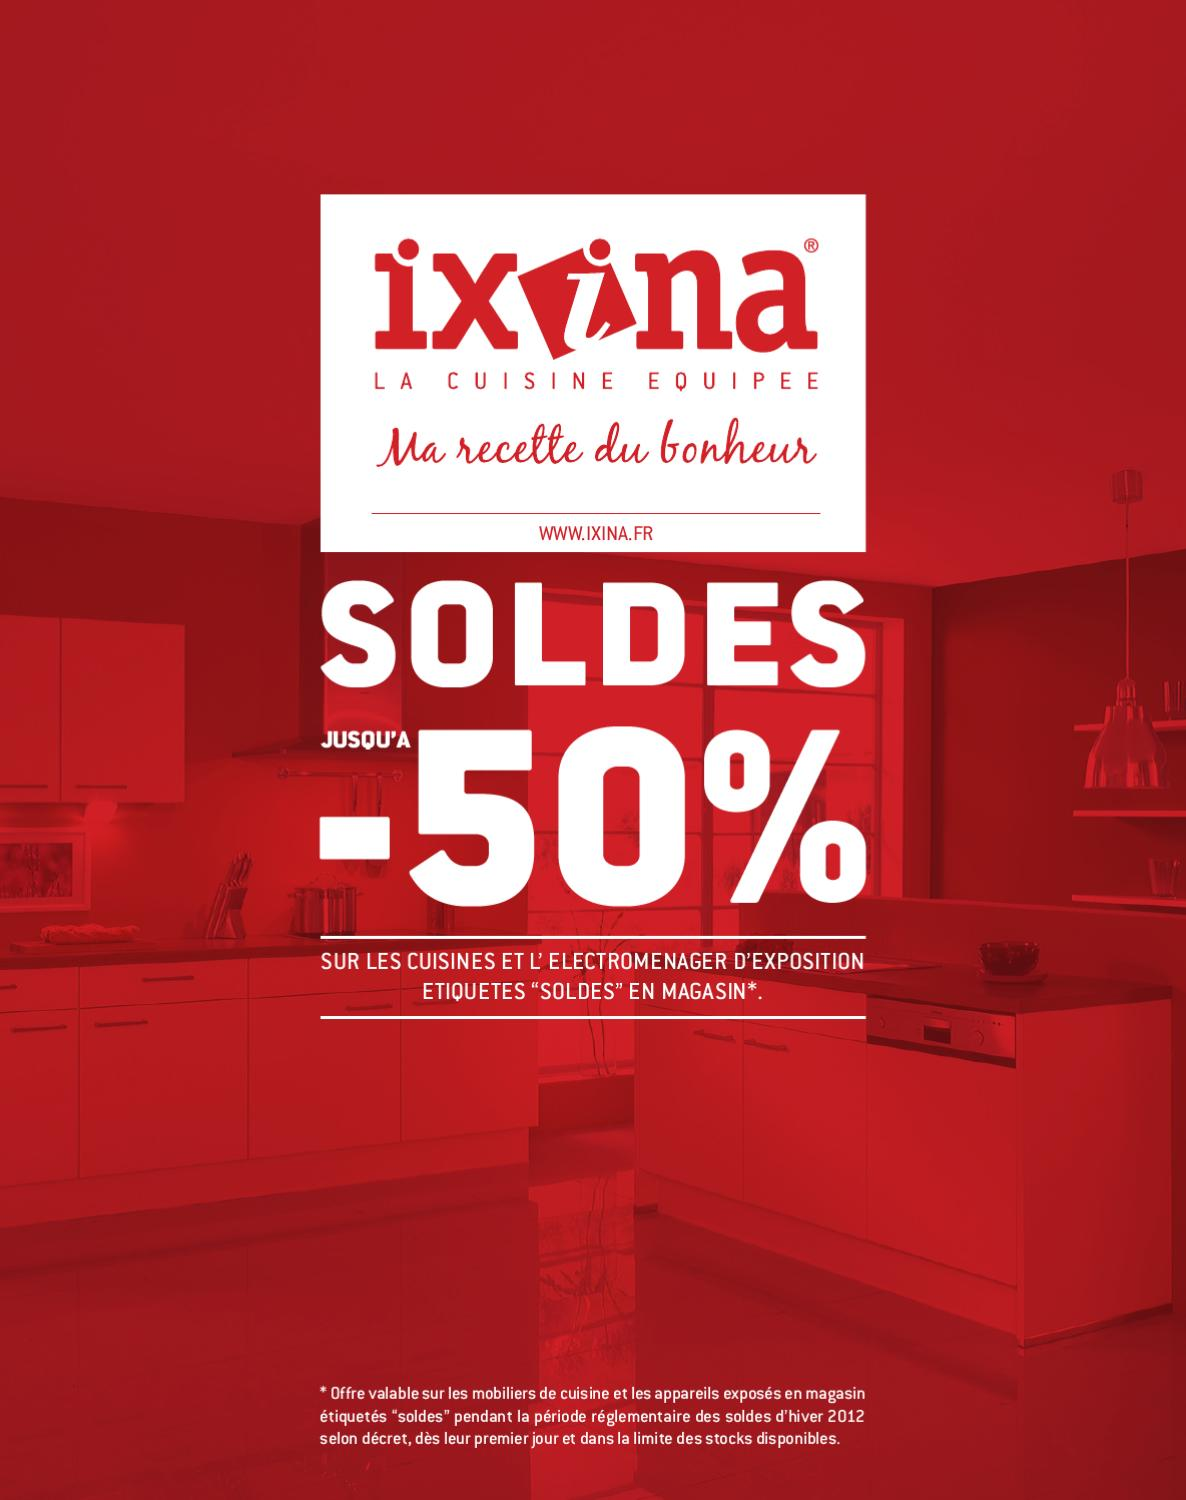 Depliant Janvier 2012 France By Ixina Franchising Issuu